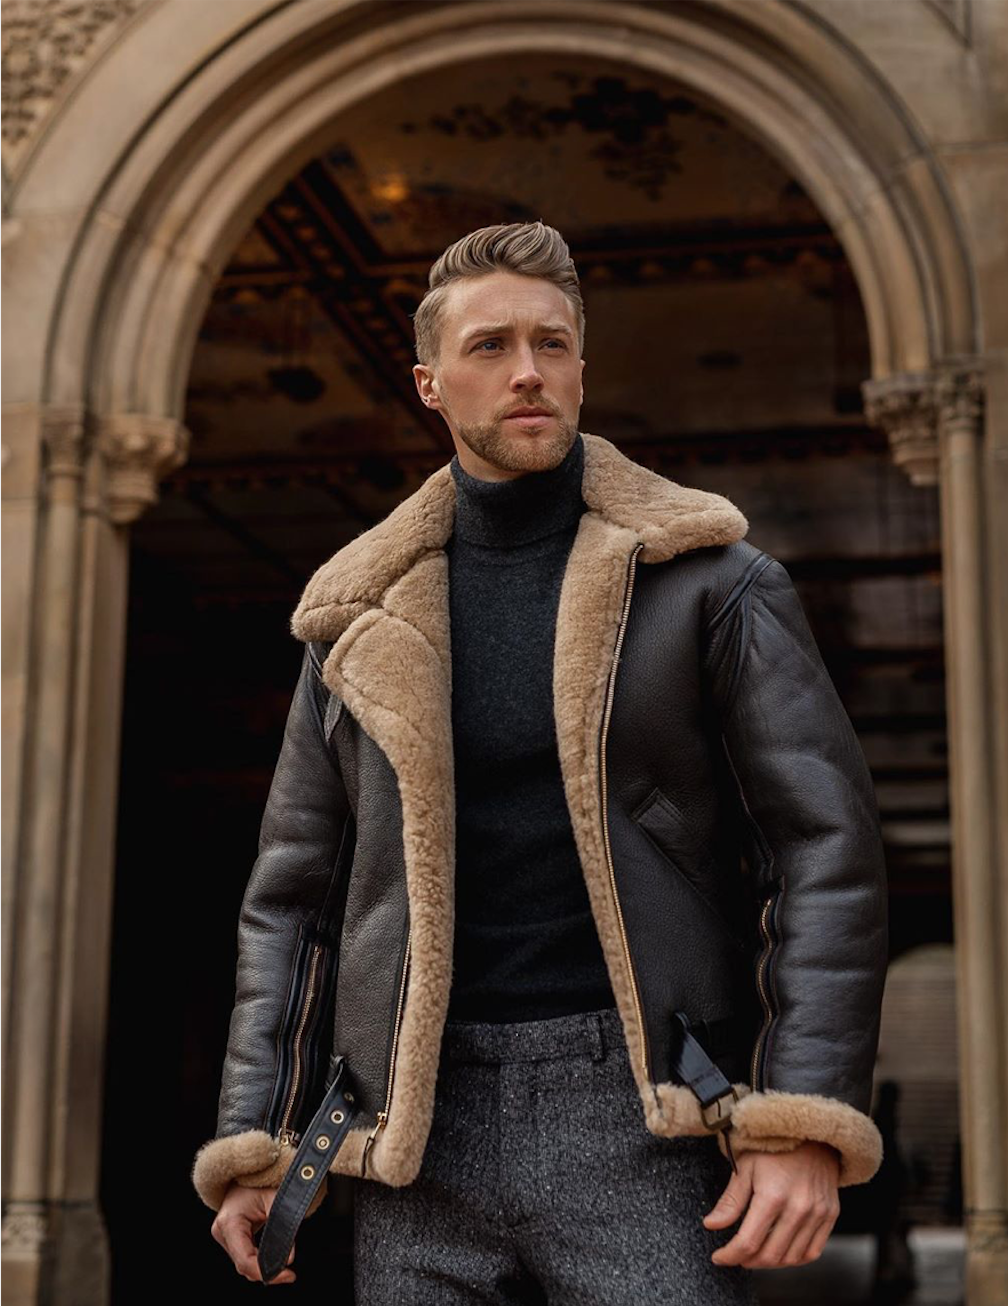 Cockpit Brand Irvin Mens Shearling Jacket Stylish Mens Outfits Mens Winter Fashion [ 1306 x 1008 Pixel ]